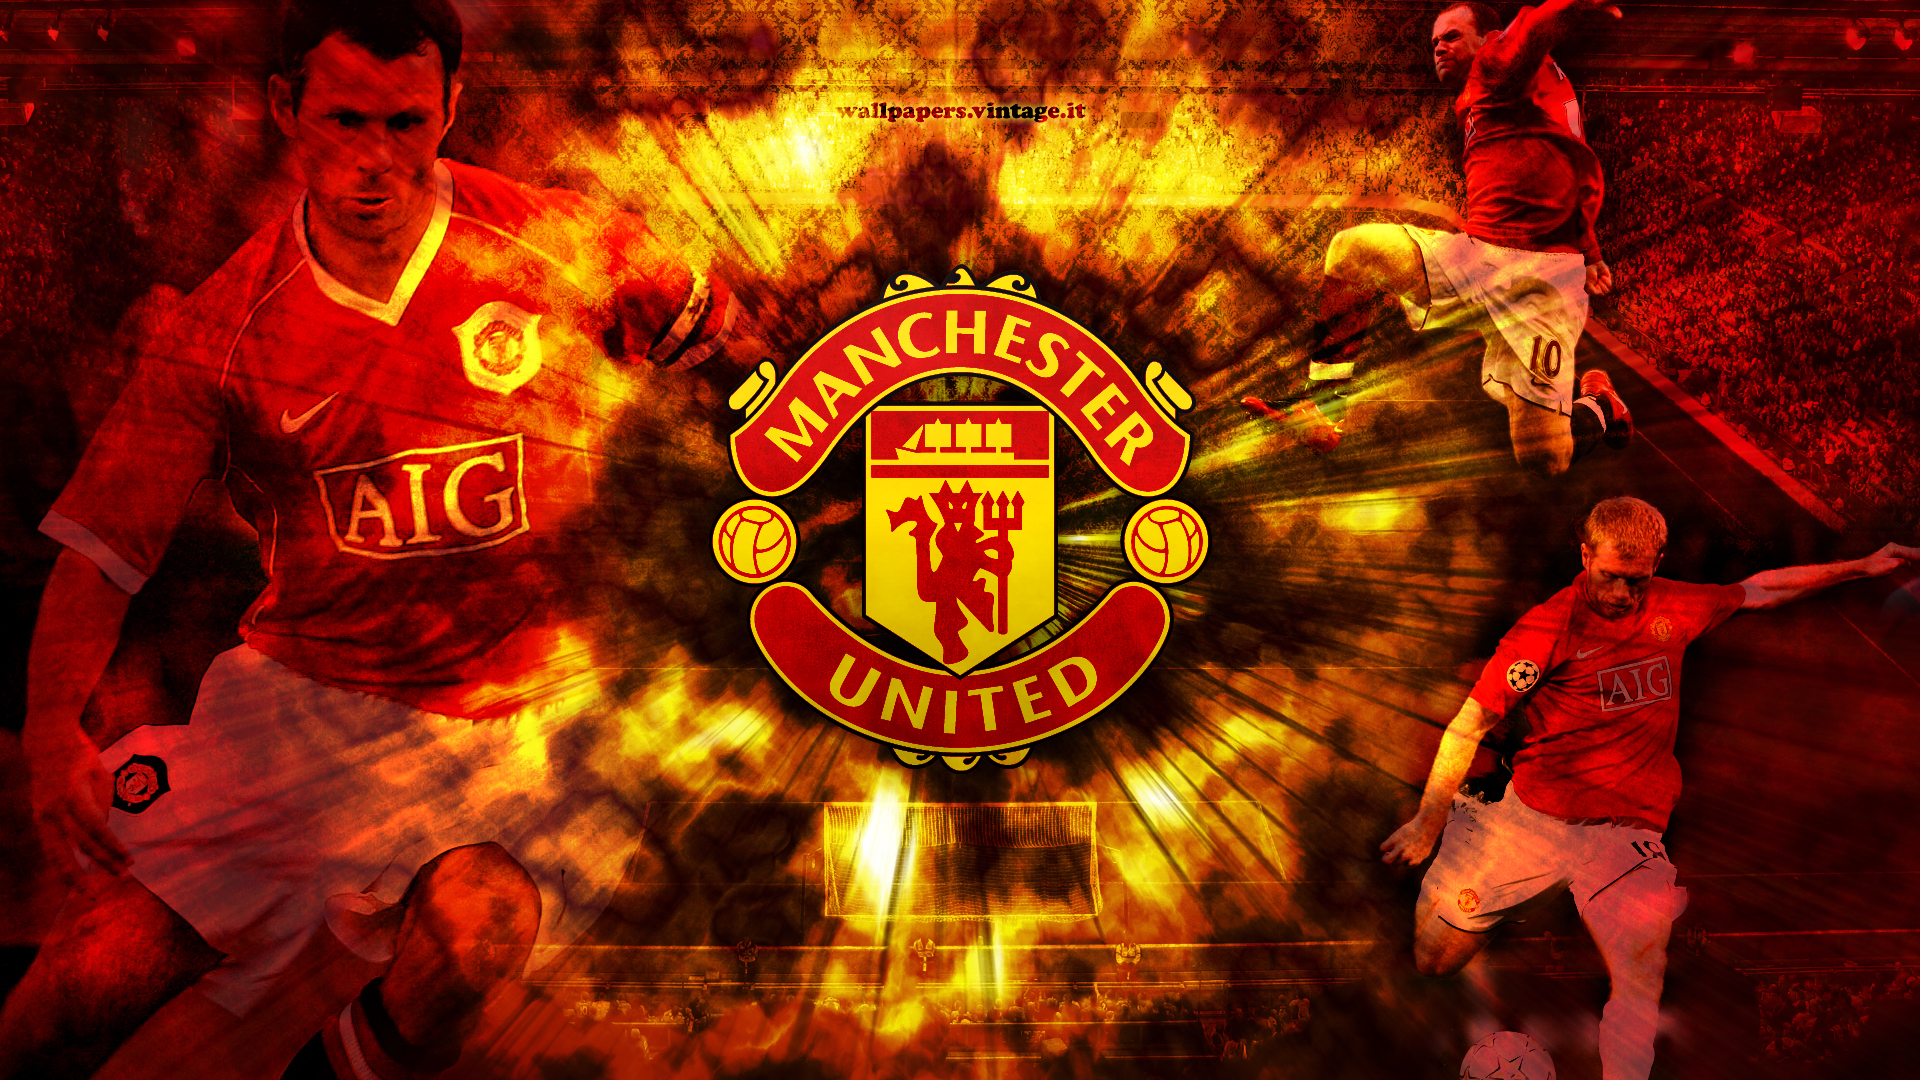 Manchester United manchester united 12536847 1920 1080jpg 1920x1080